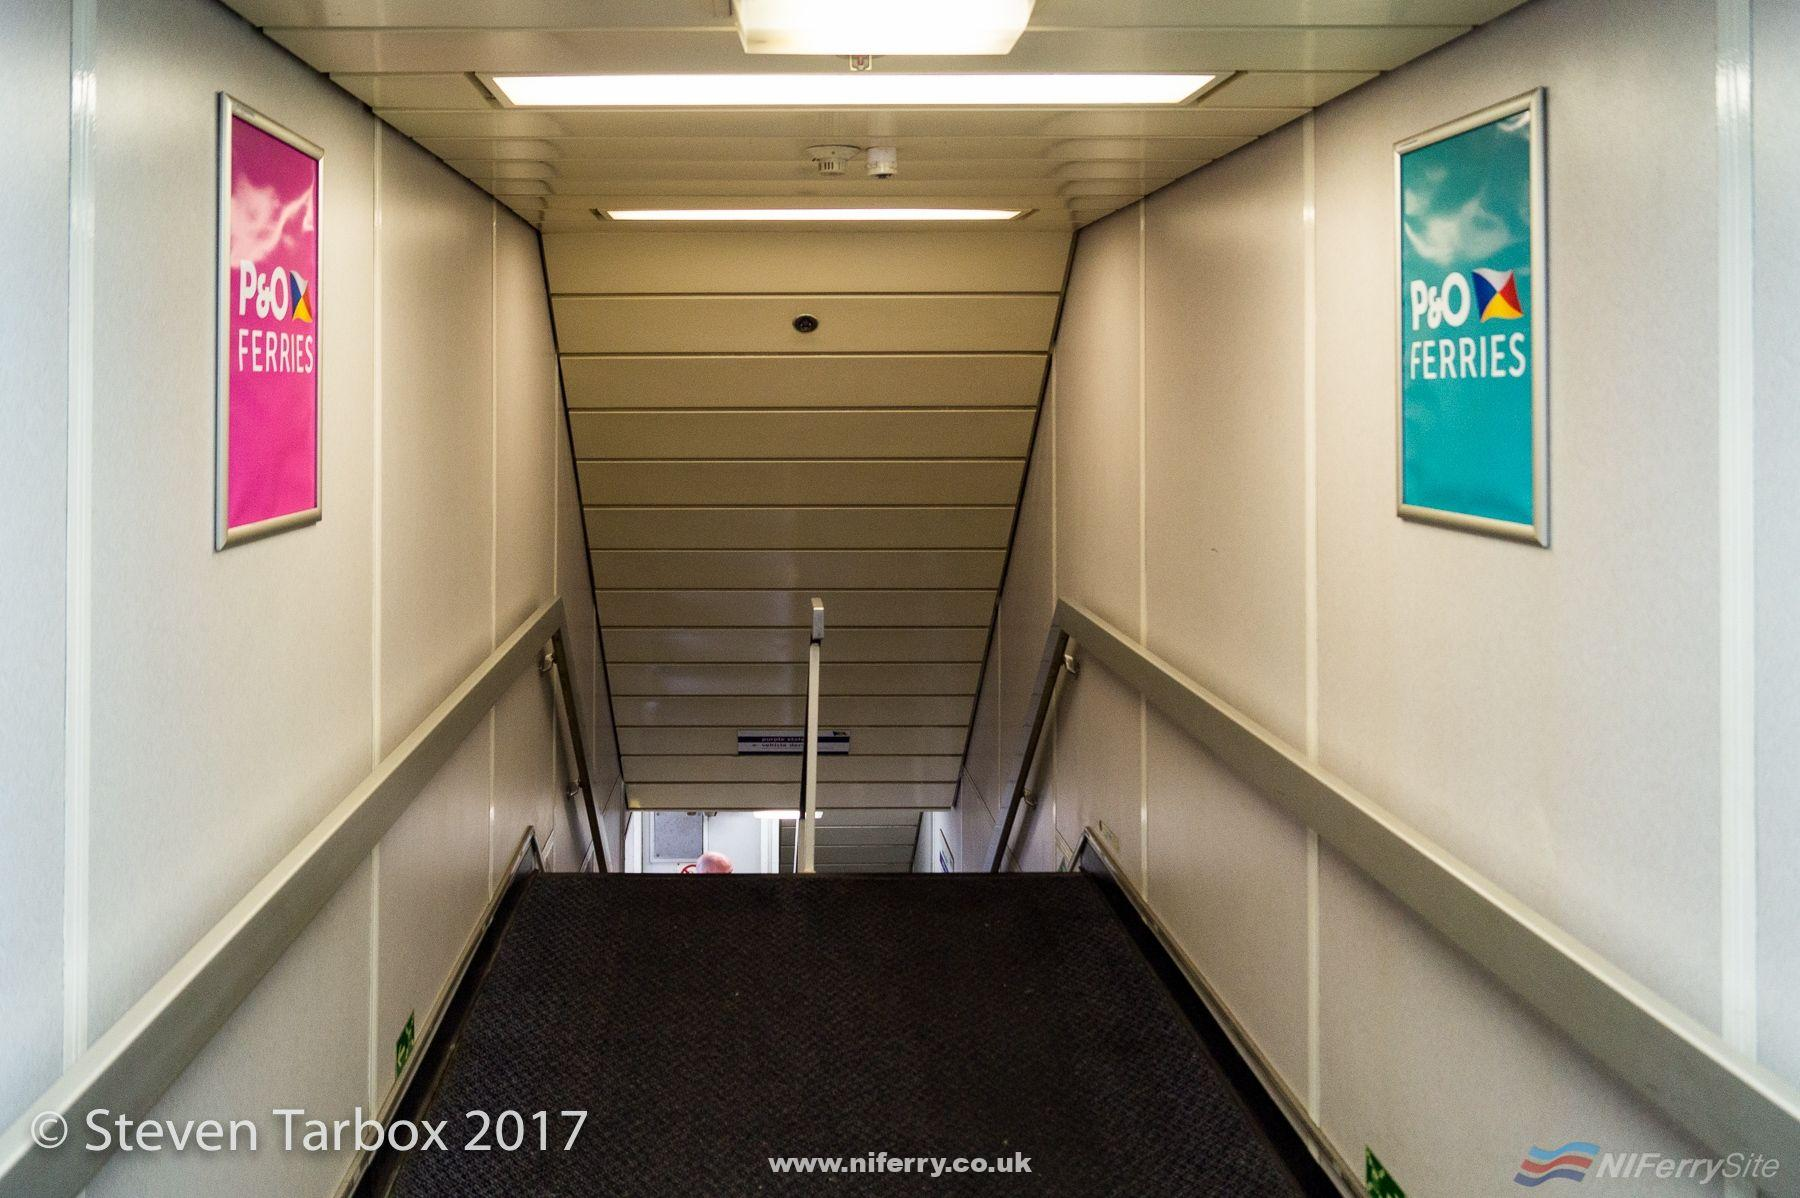 The main stairs between deck 5 and 4. Some of the signage showed signs of the P&O Stena past of the vessel. This example was on the vehicle deck. © Steven Tarbox